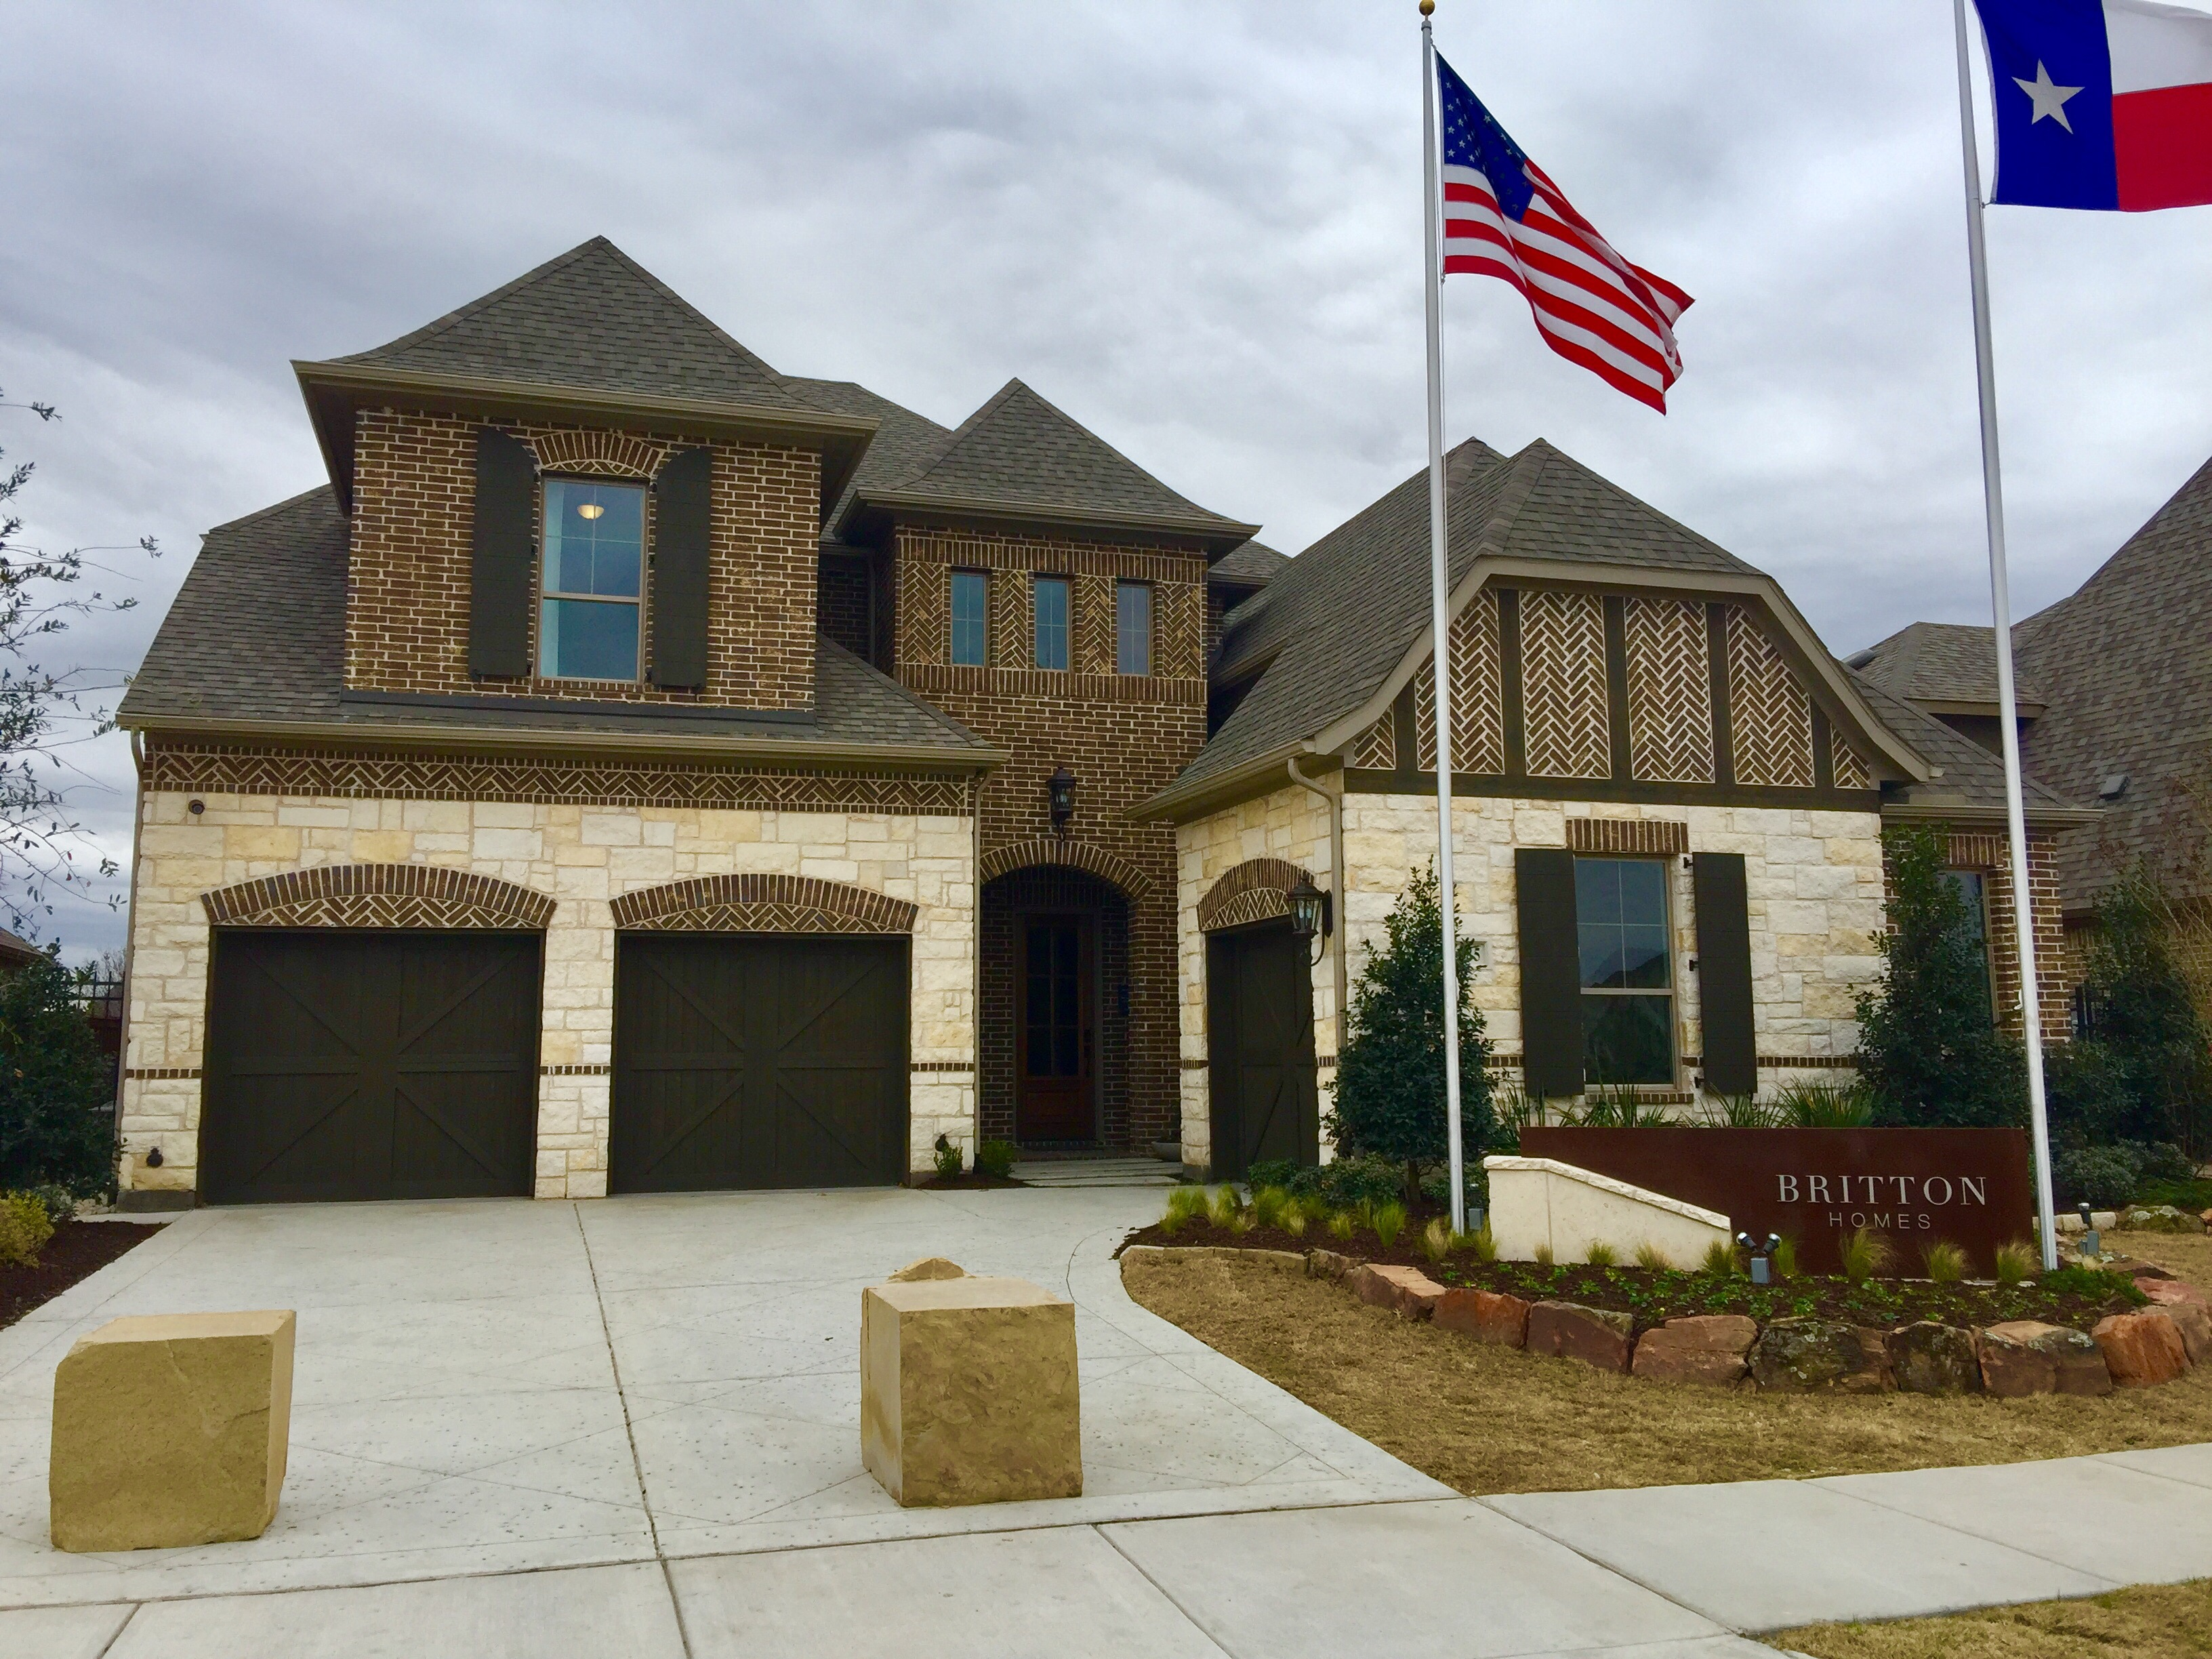 Britton Homes at Hollyhock in Frisco has some amazing opportunities – Britton Homes Floor Plans